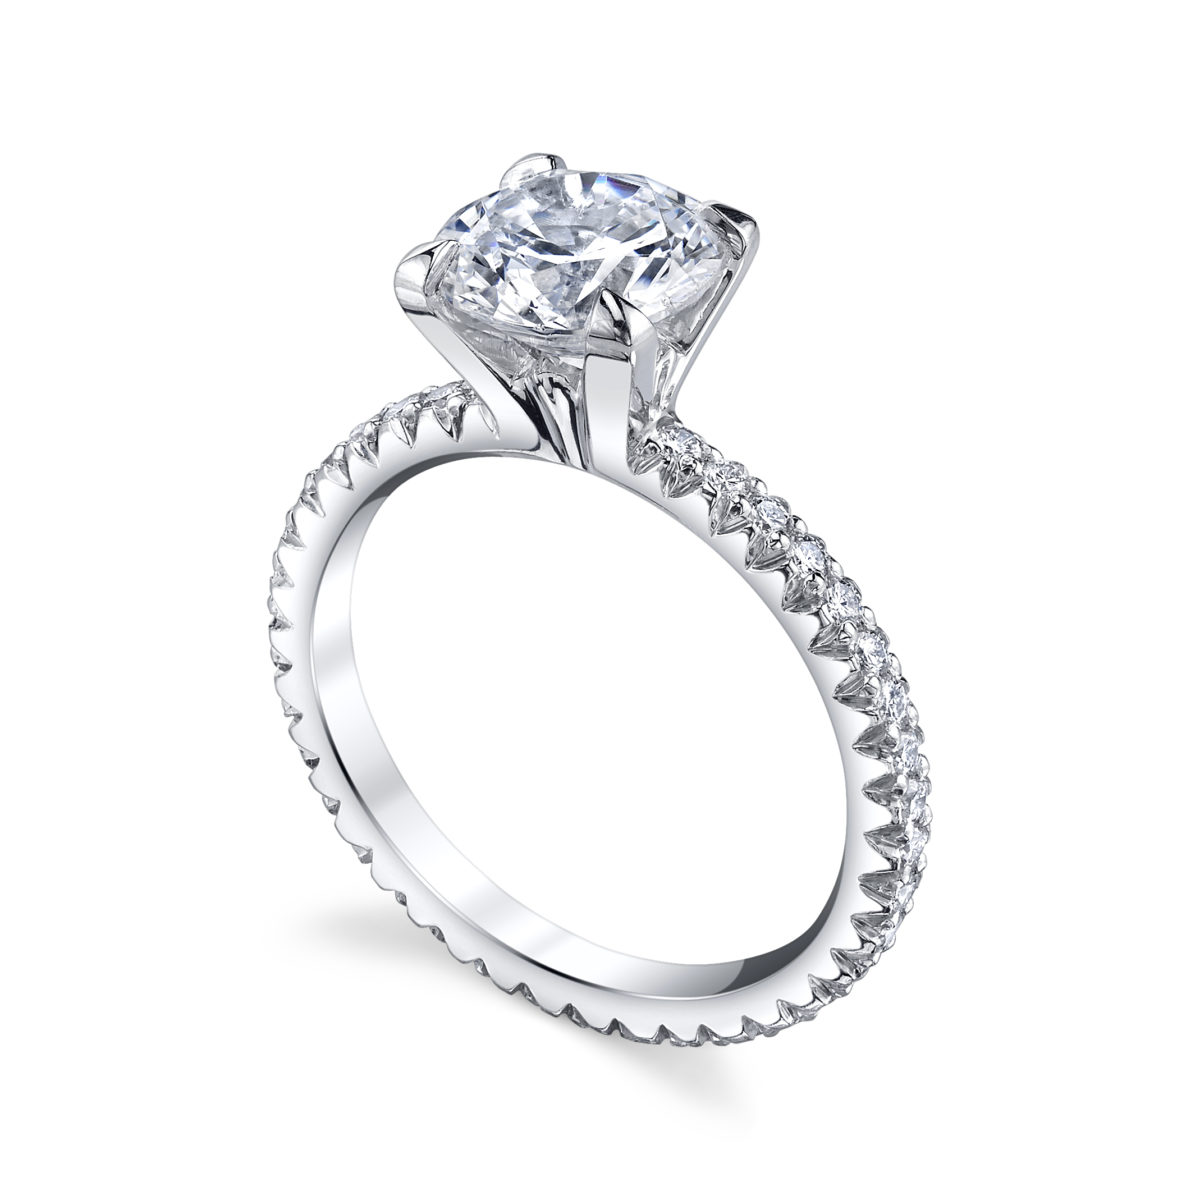 michael b princess engagement ring - Princess Wedding Ring